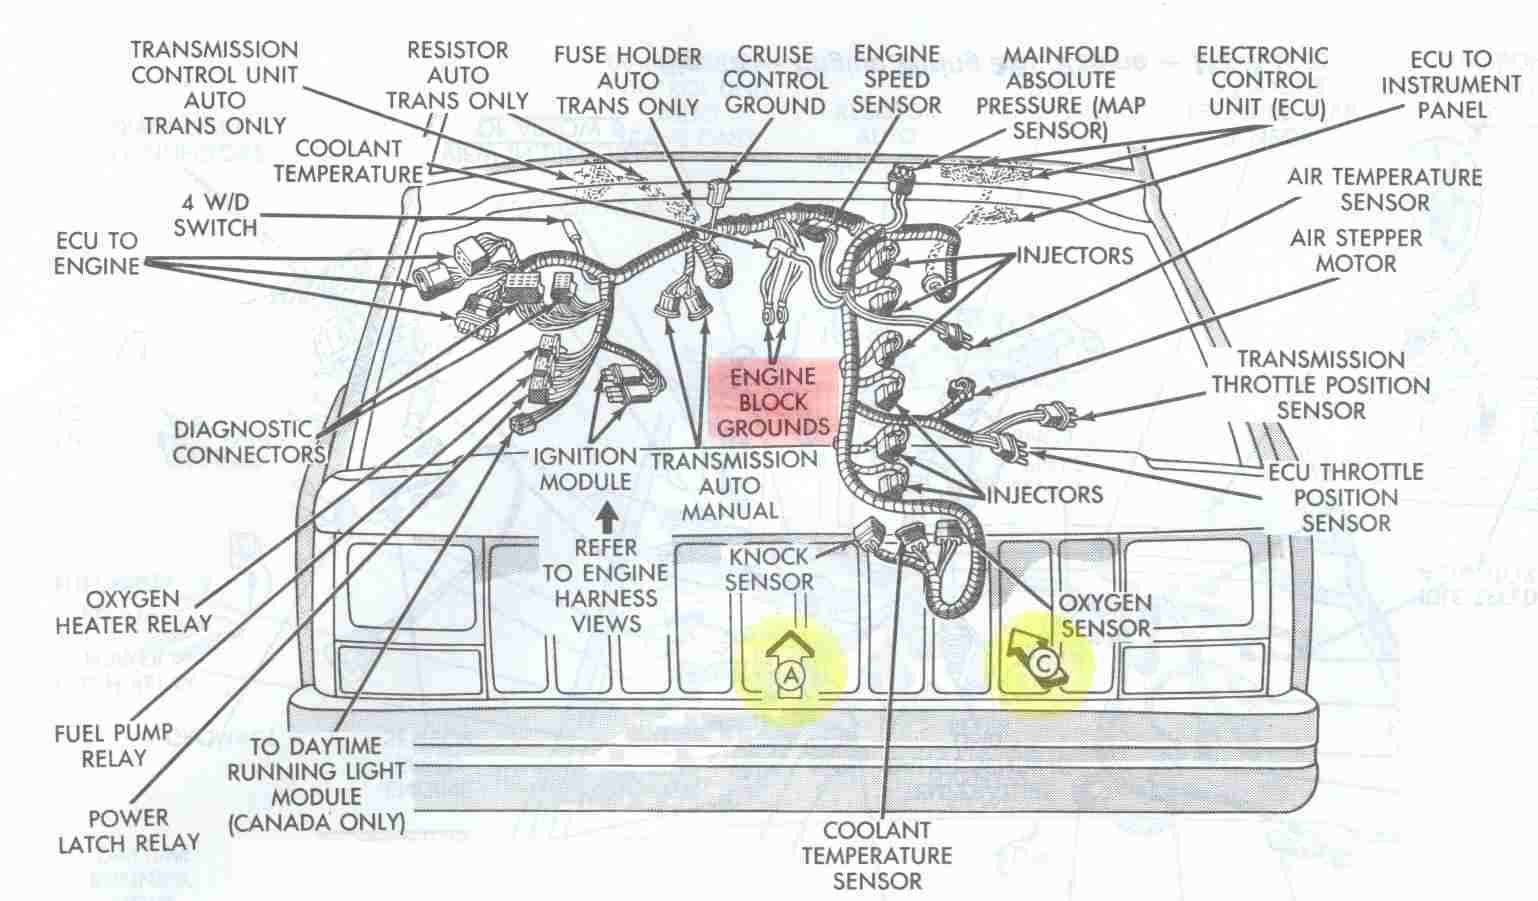 small resolution of jeep 4 0 wiring harness wiring diagram third level rh 17 9 15 jacobwinterstein com 2004 jeep wrangler engine compartment diagram 1989 jeep wrangler engine